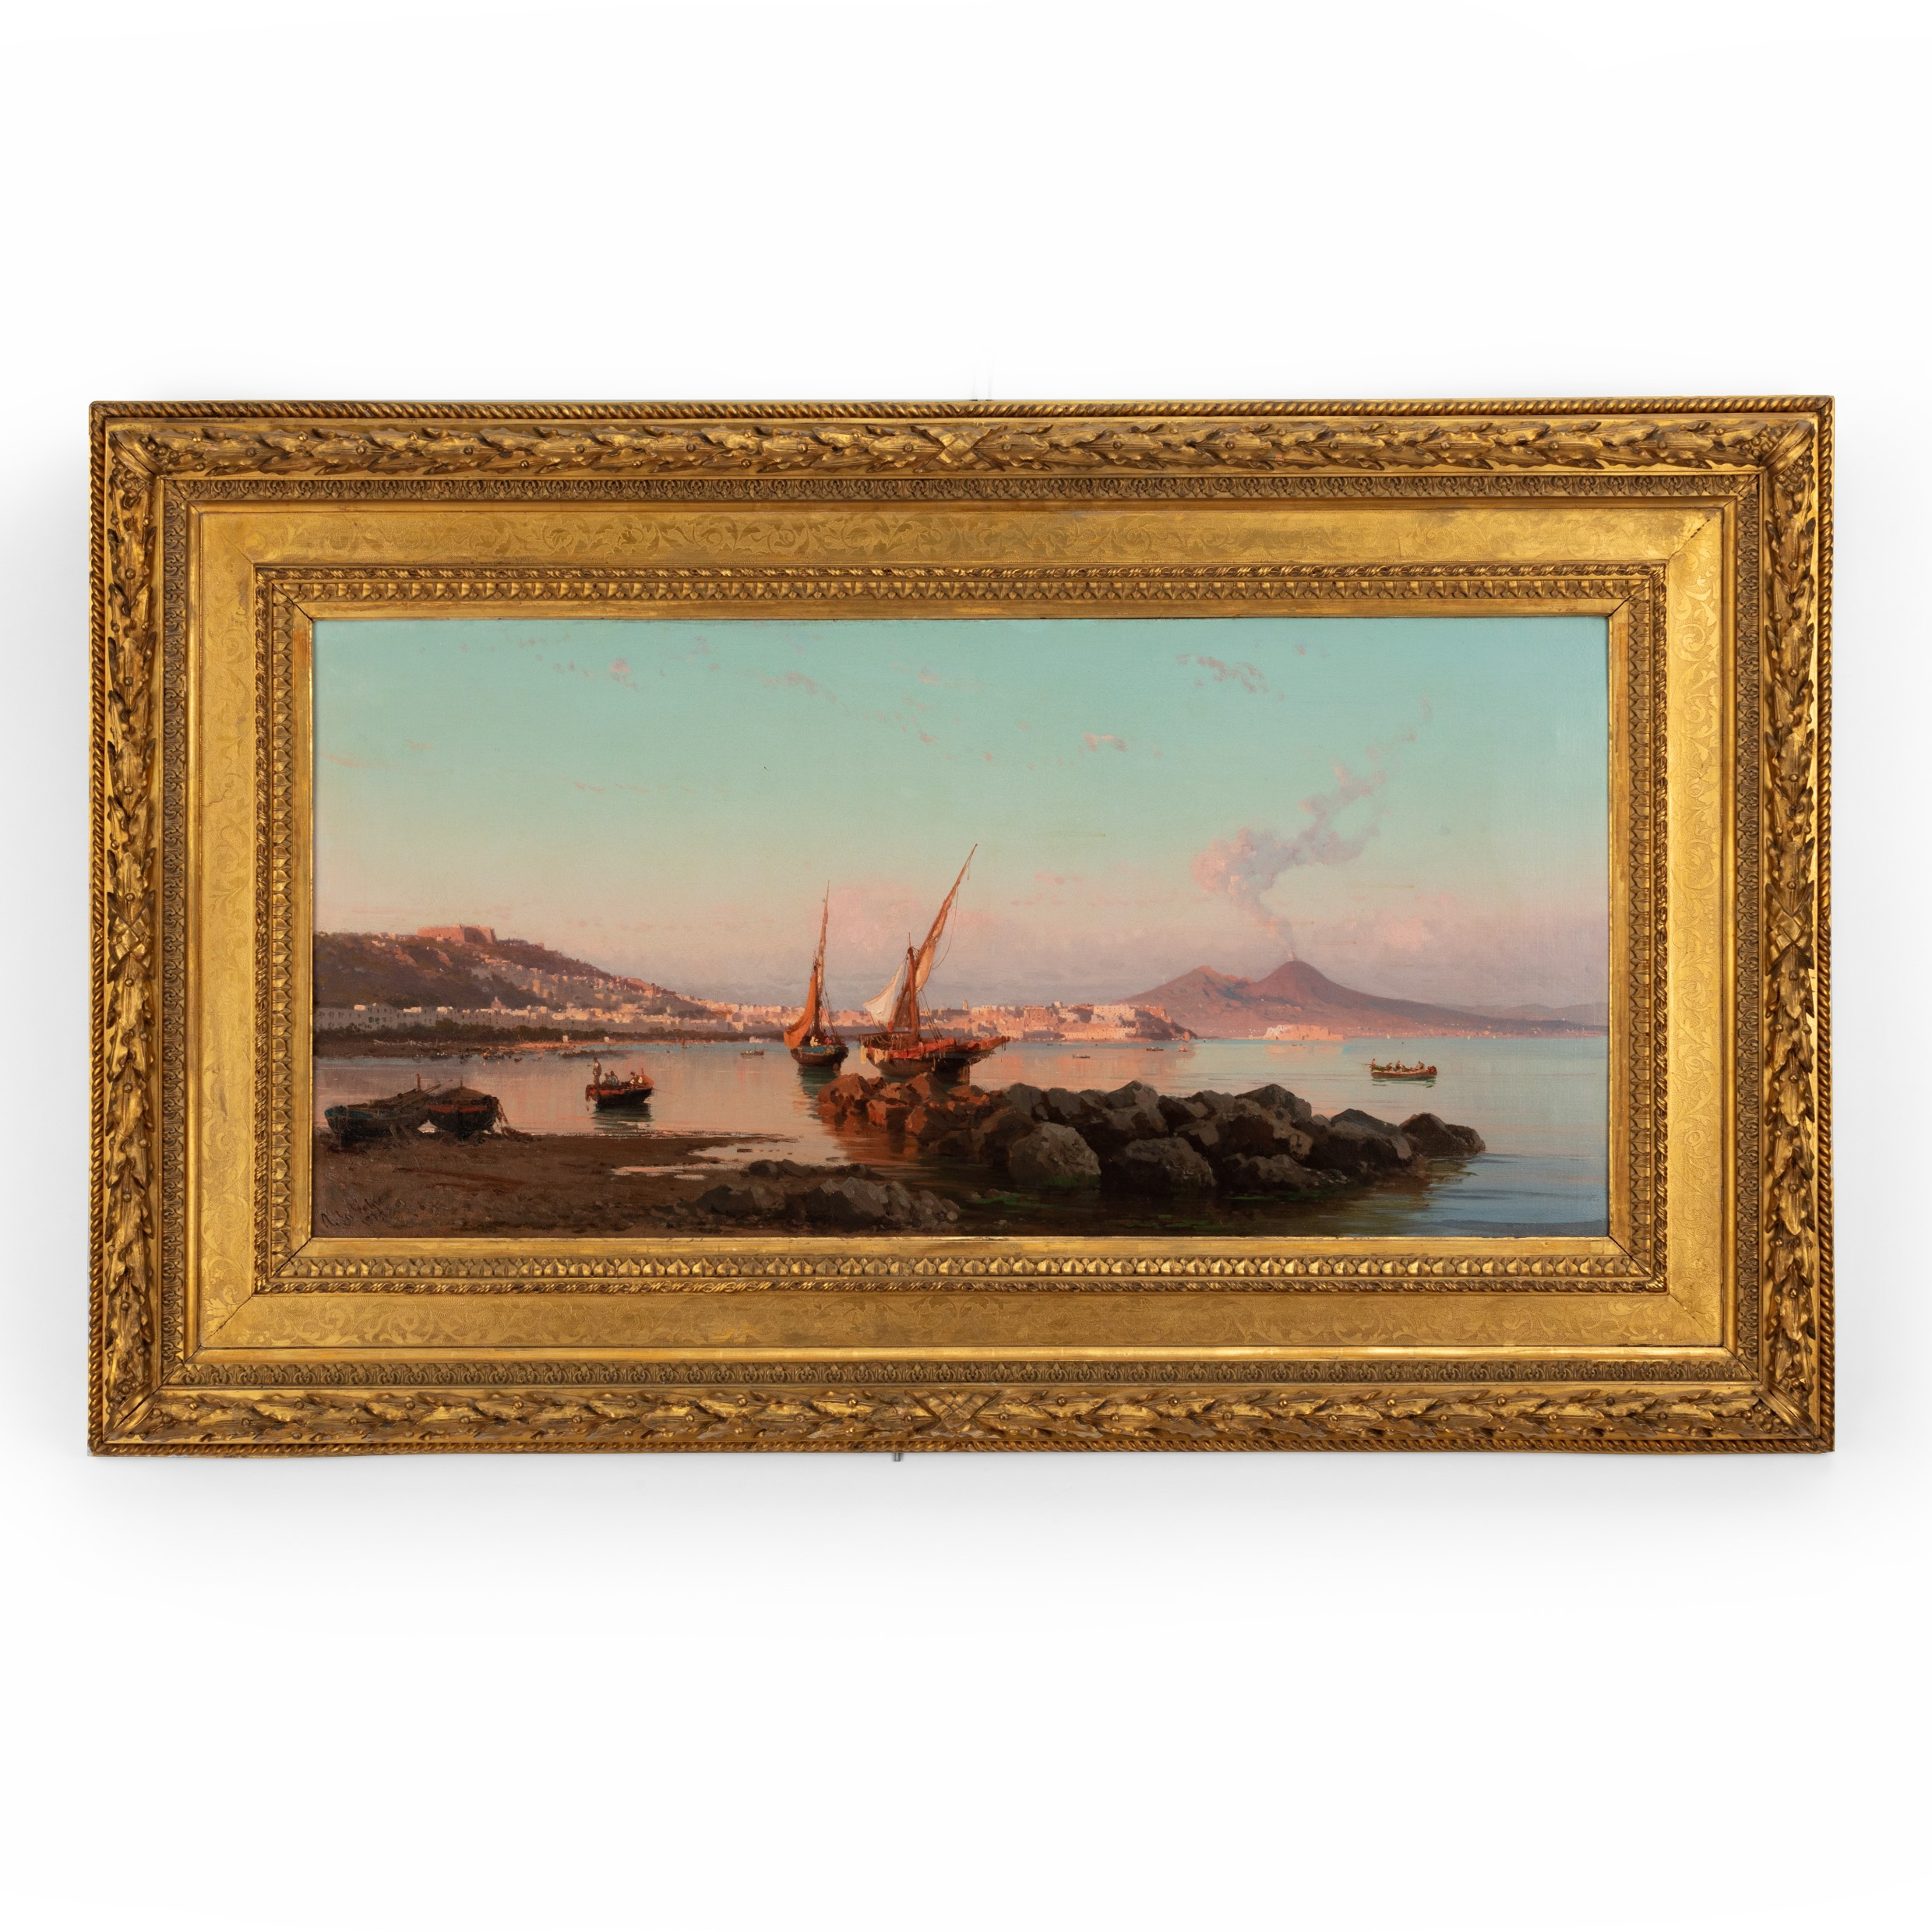 View of the Bay of Naples by Alessandro La Volpe, oil on relined canvas, signed & indistinctly dated 1877, in the original orientalist frame. Italian, 1877.